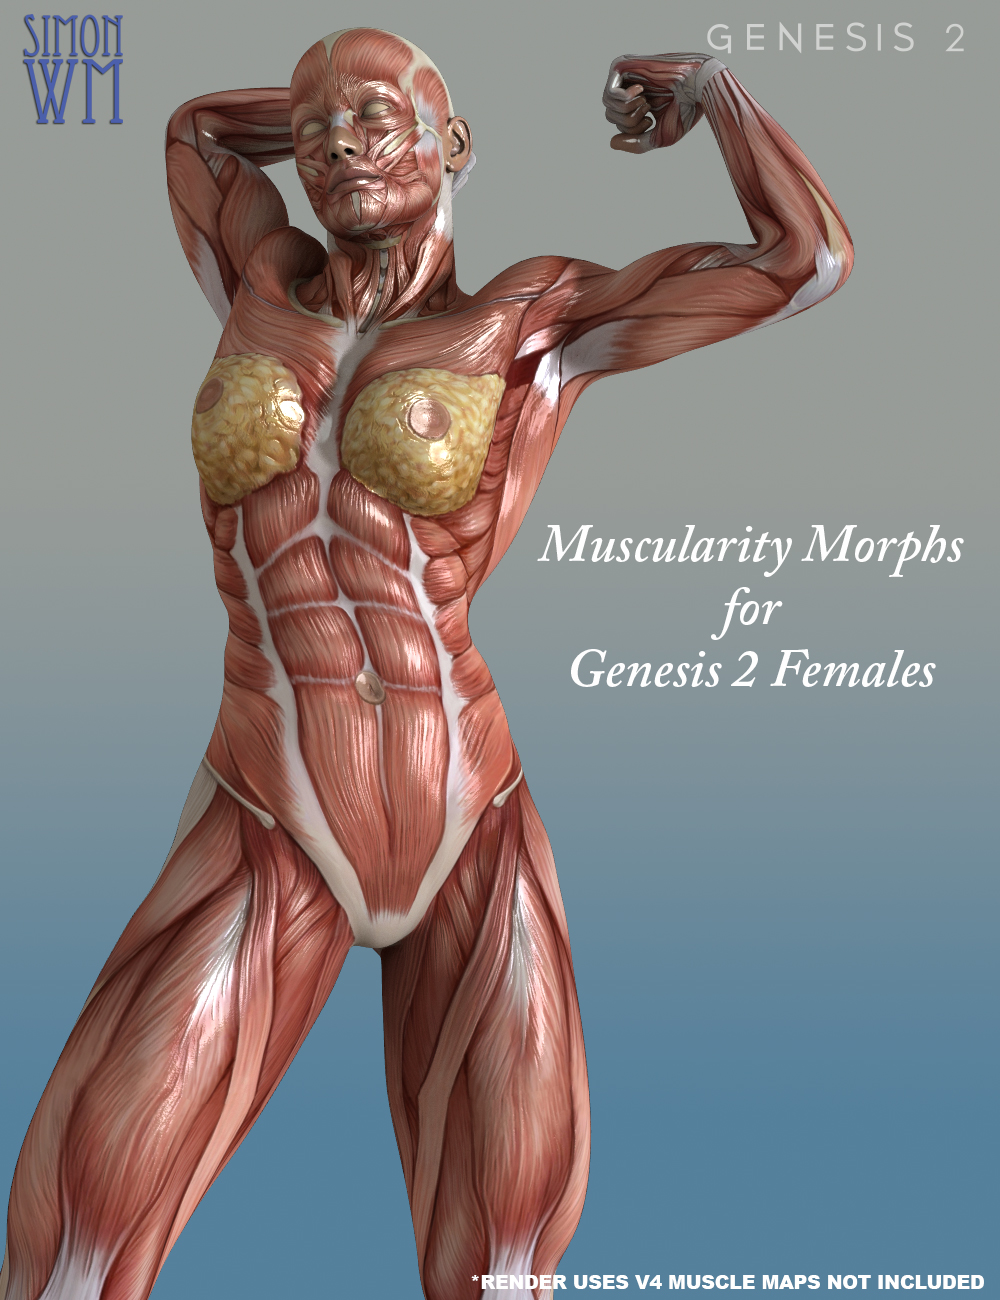 Muscularity Morphs for Genesis 2 Female(s) by: SimonWM, 3D Models by Daz 3D